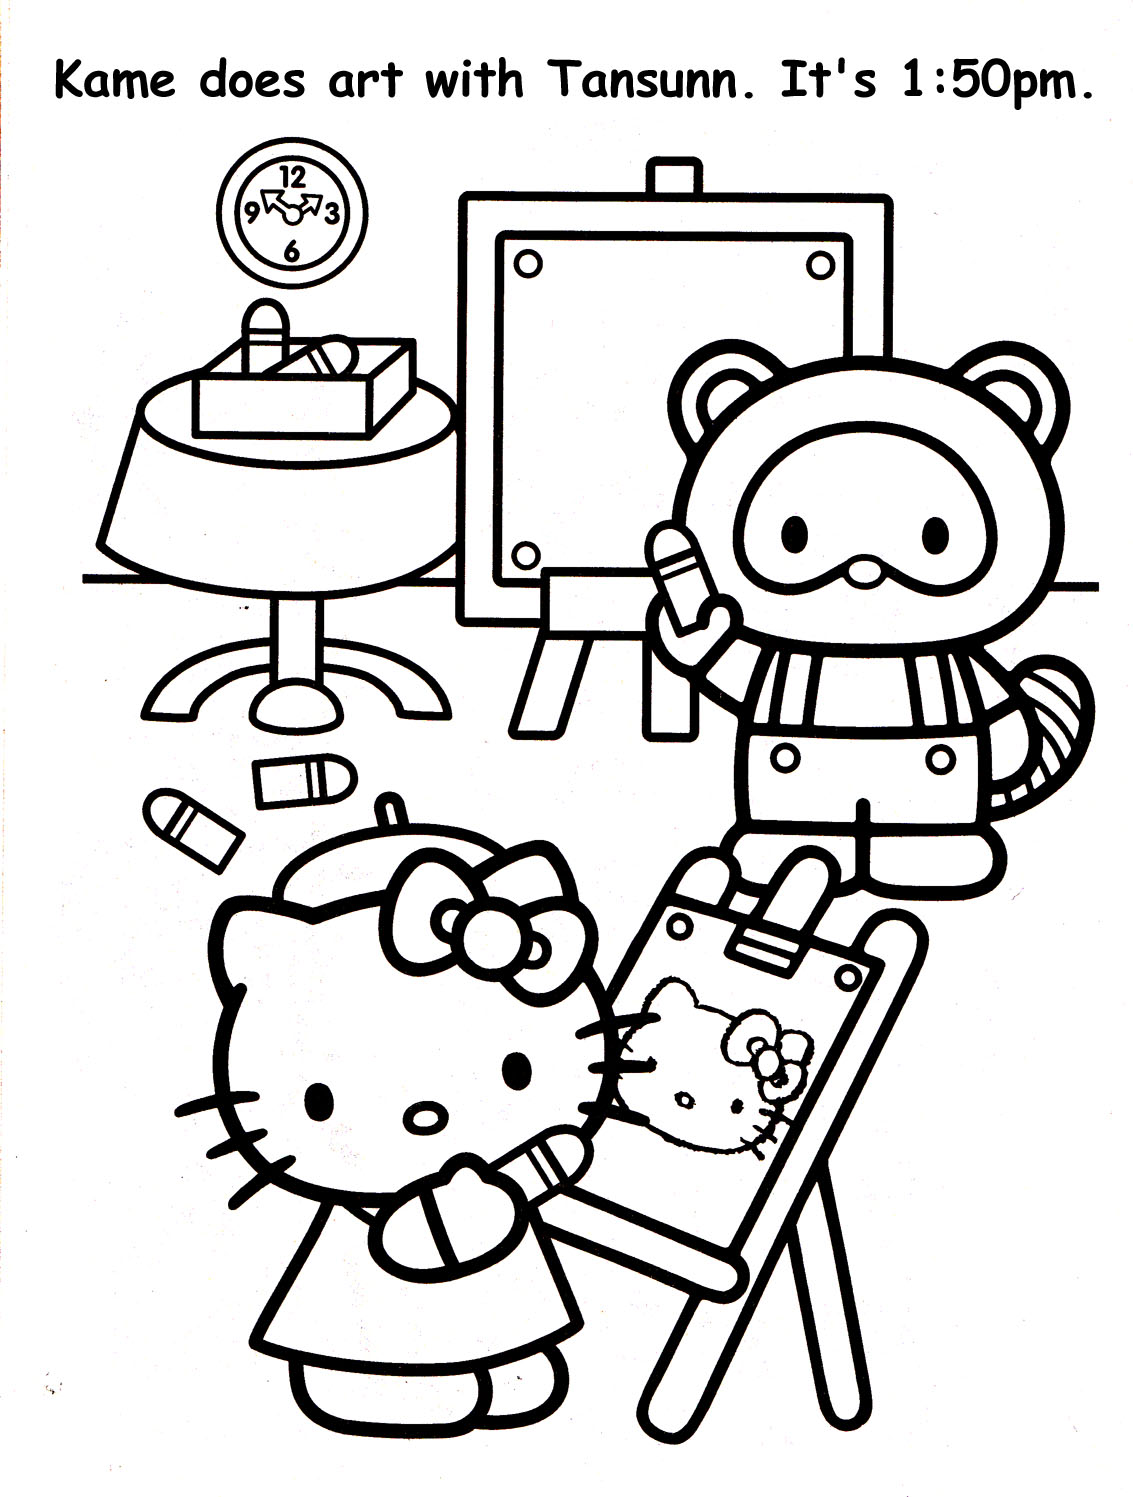 old radio drawing coloring coloring pages